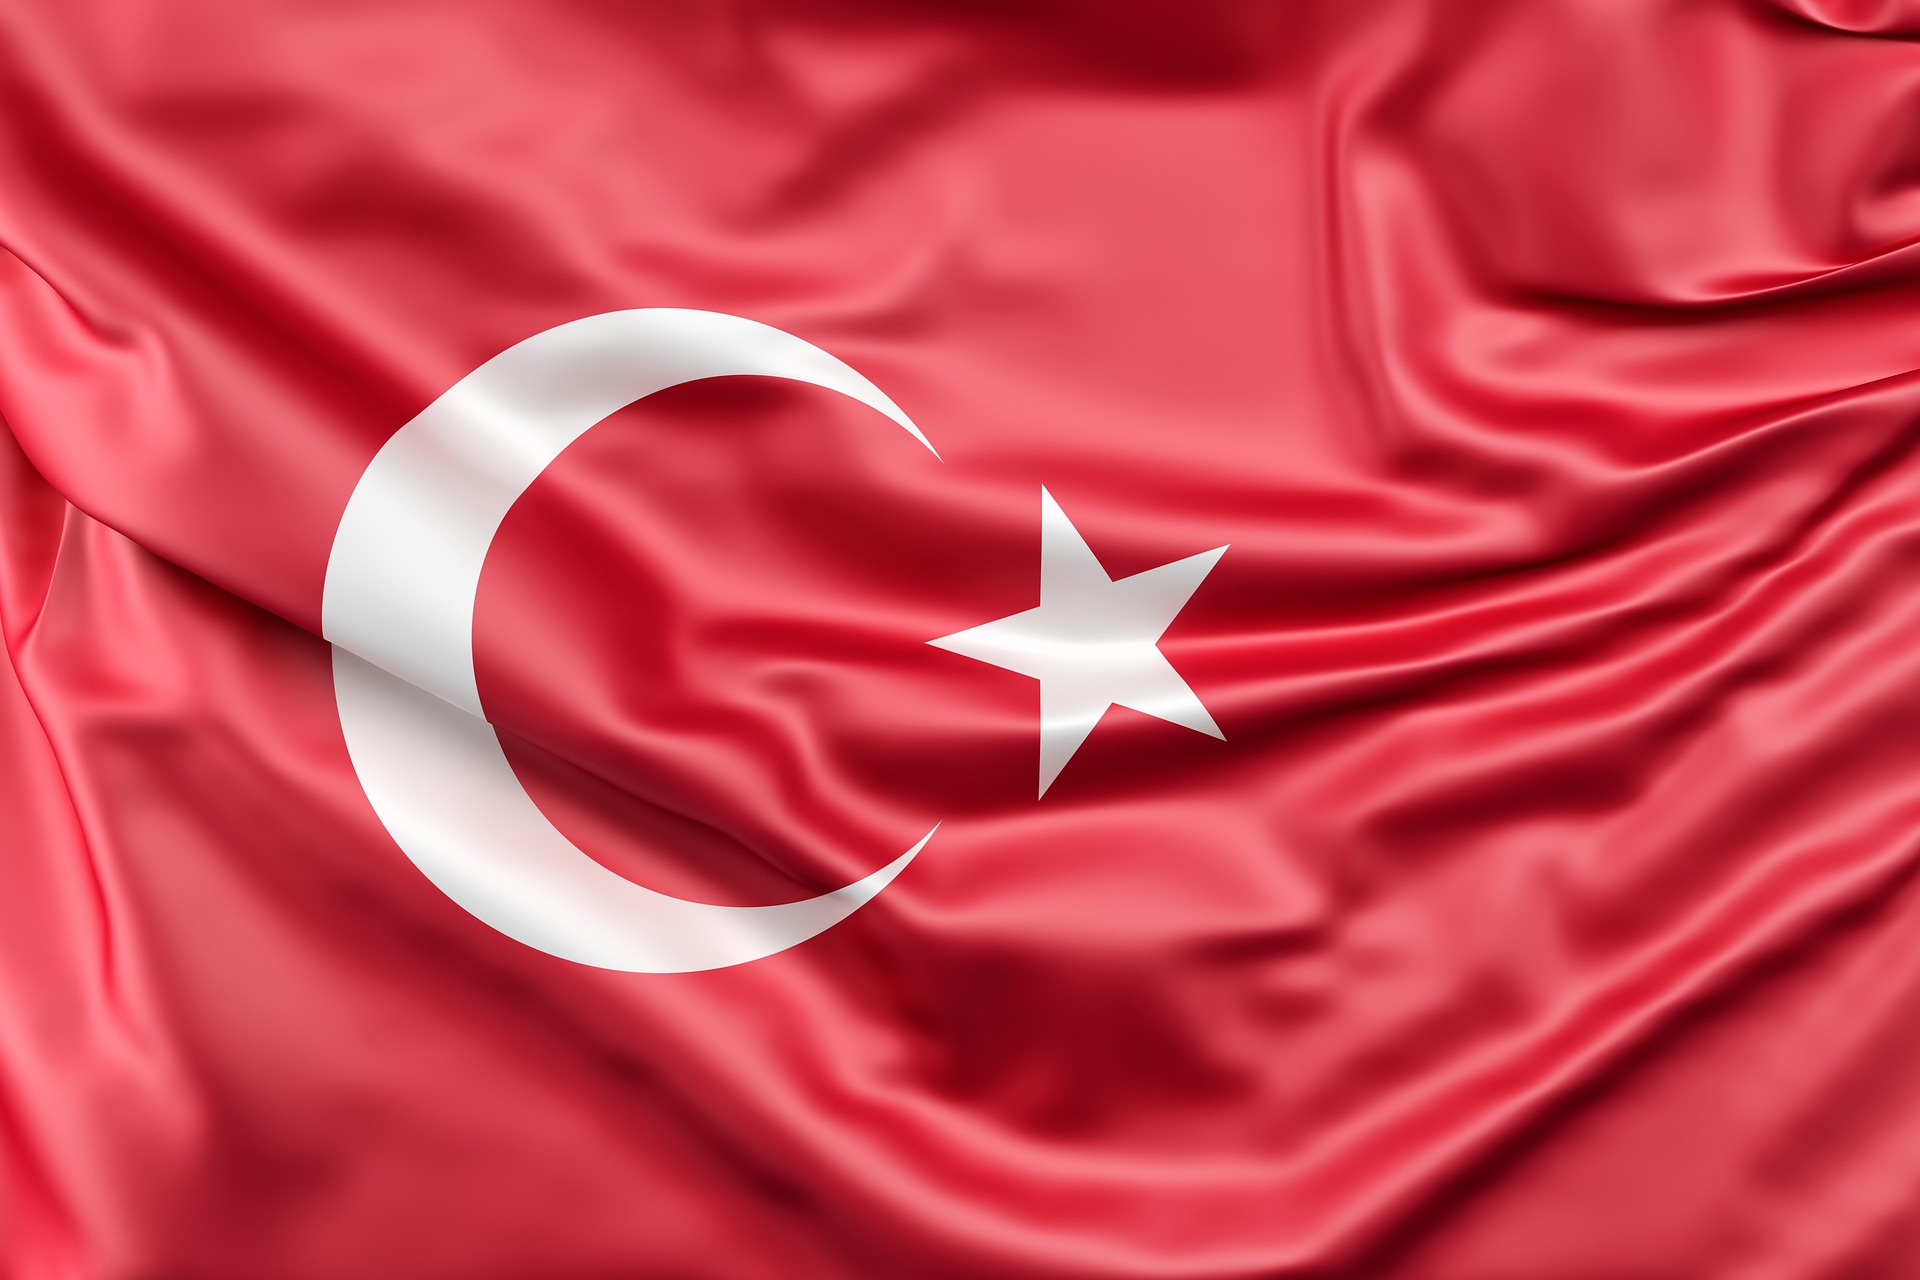 flag-of-turkey-3036191_1920